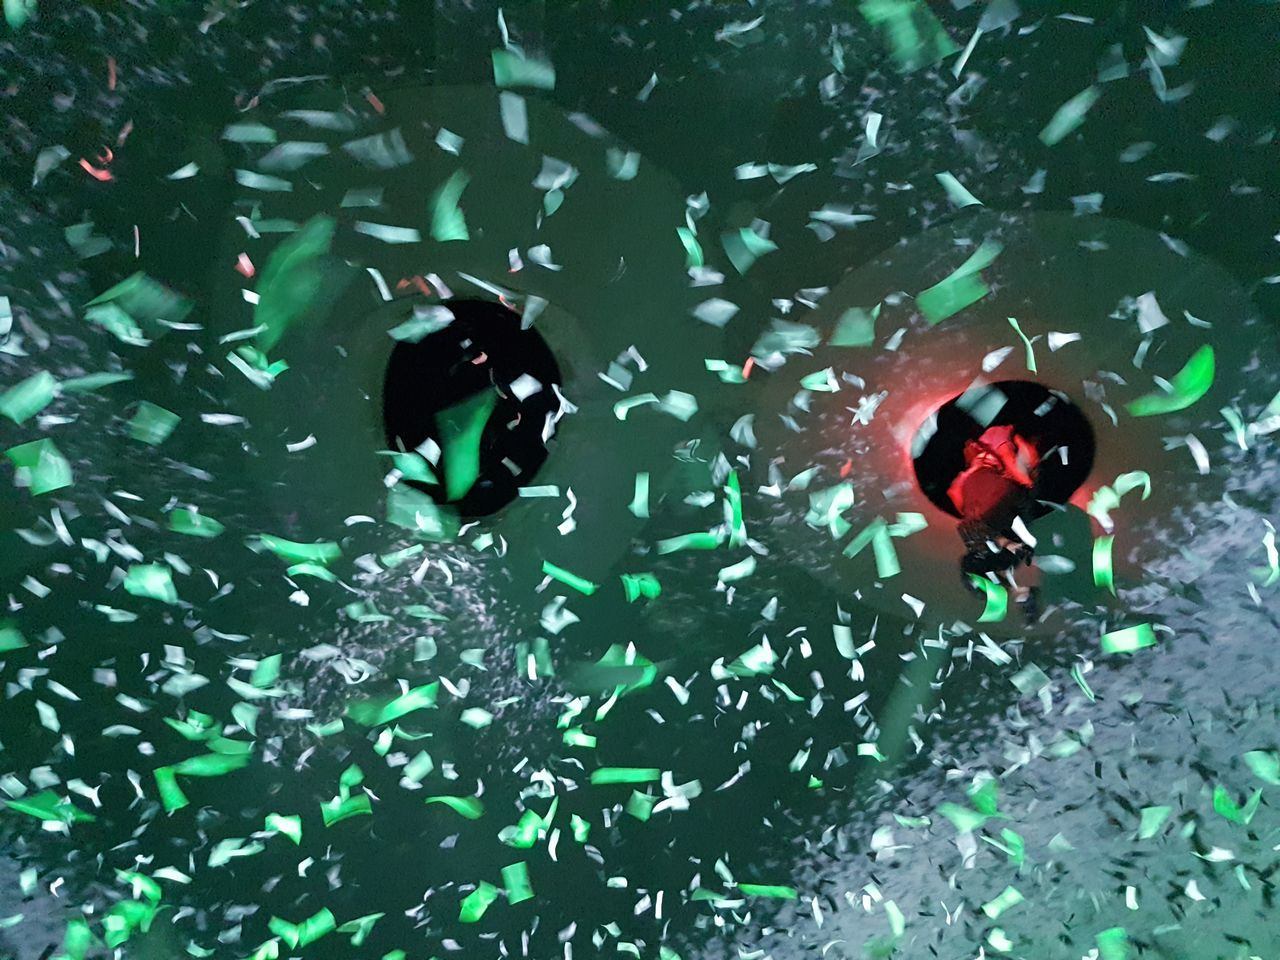 Confetti Green Lights Colour Excitement Layers Sprinkle